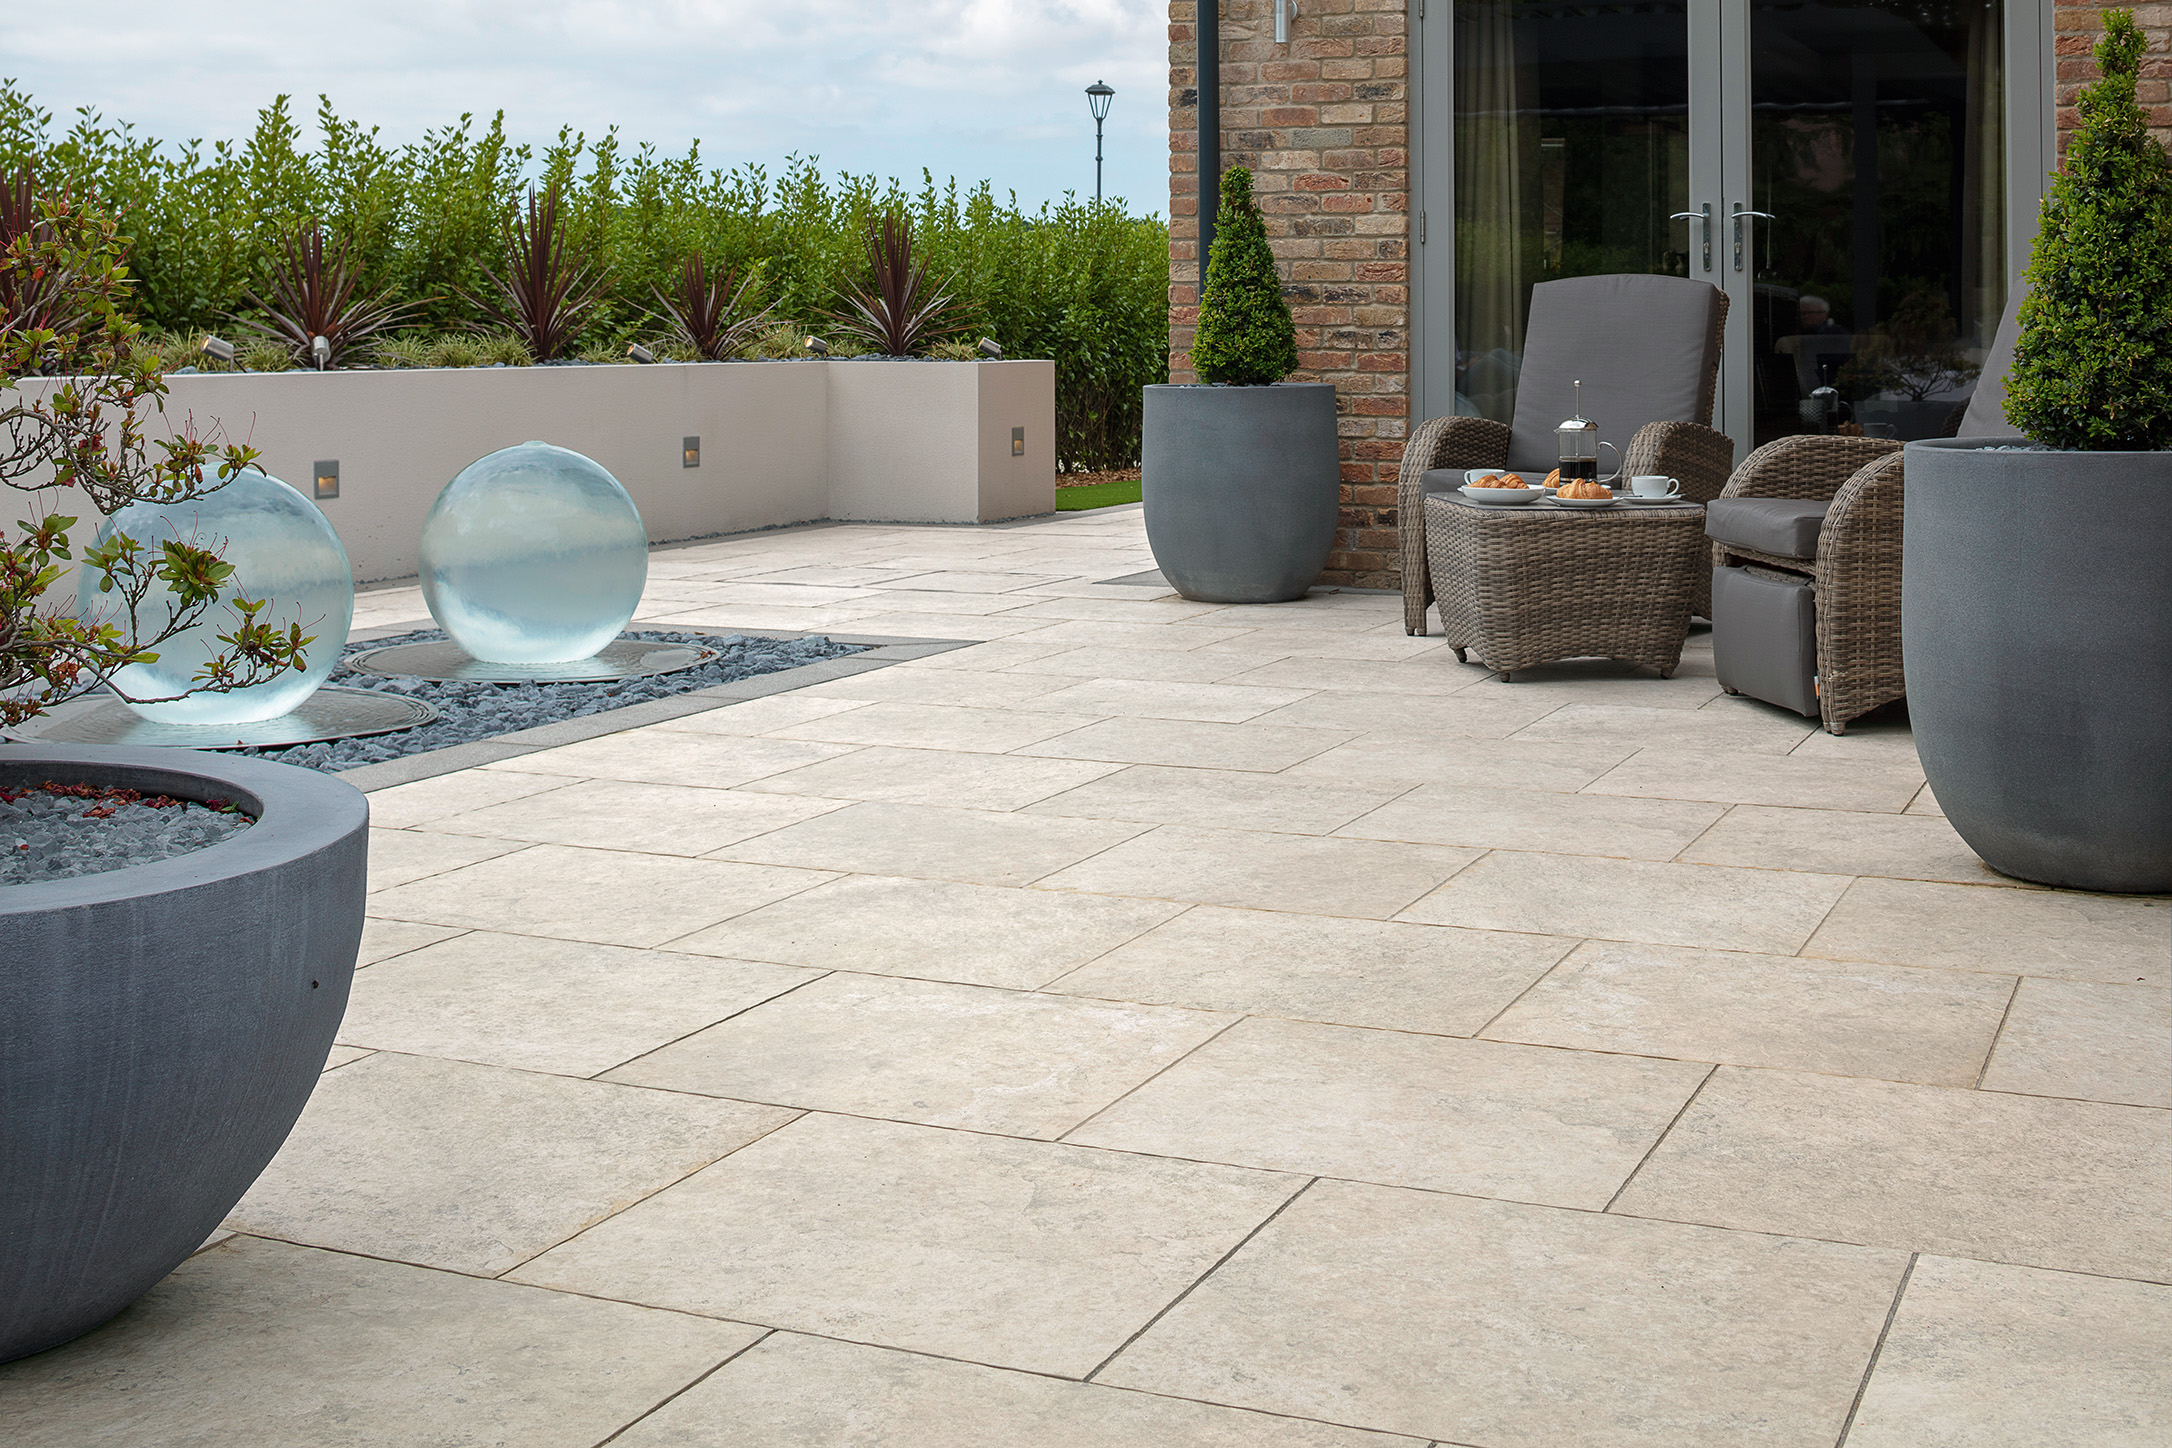 Marshalls Symphony Natural garden paving in Ivory.